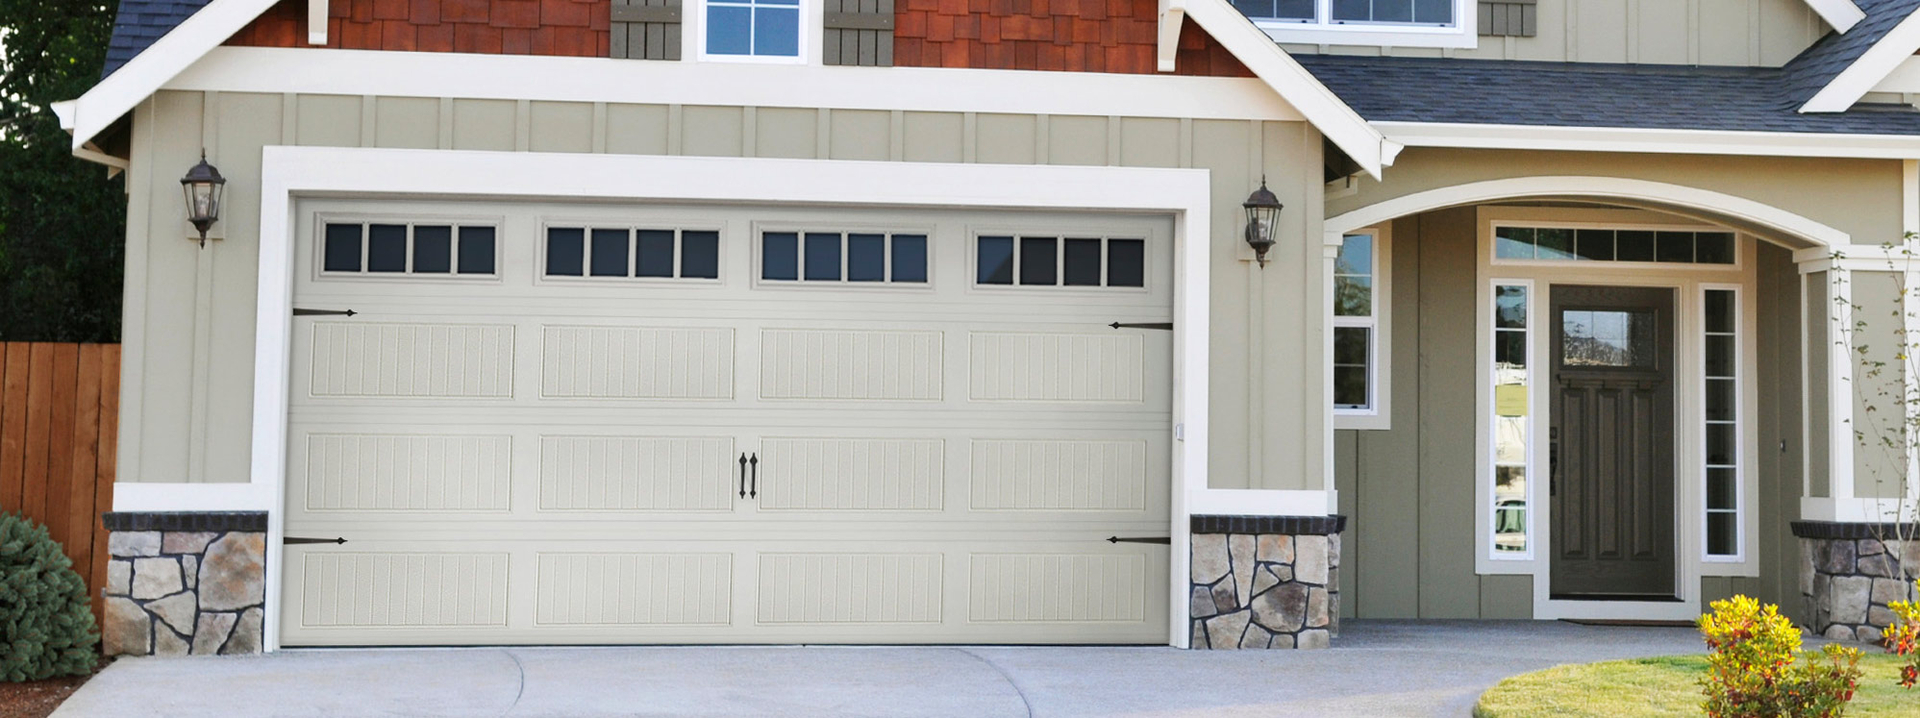 door garage doors repair accesskeyid disposition elite opener alloworigin electric gate